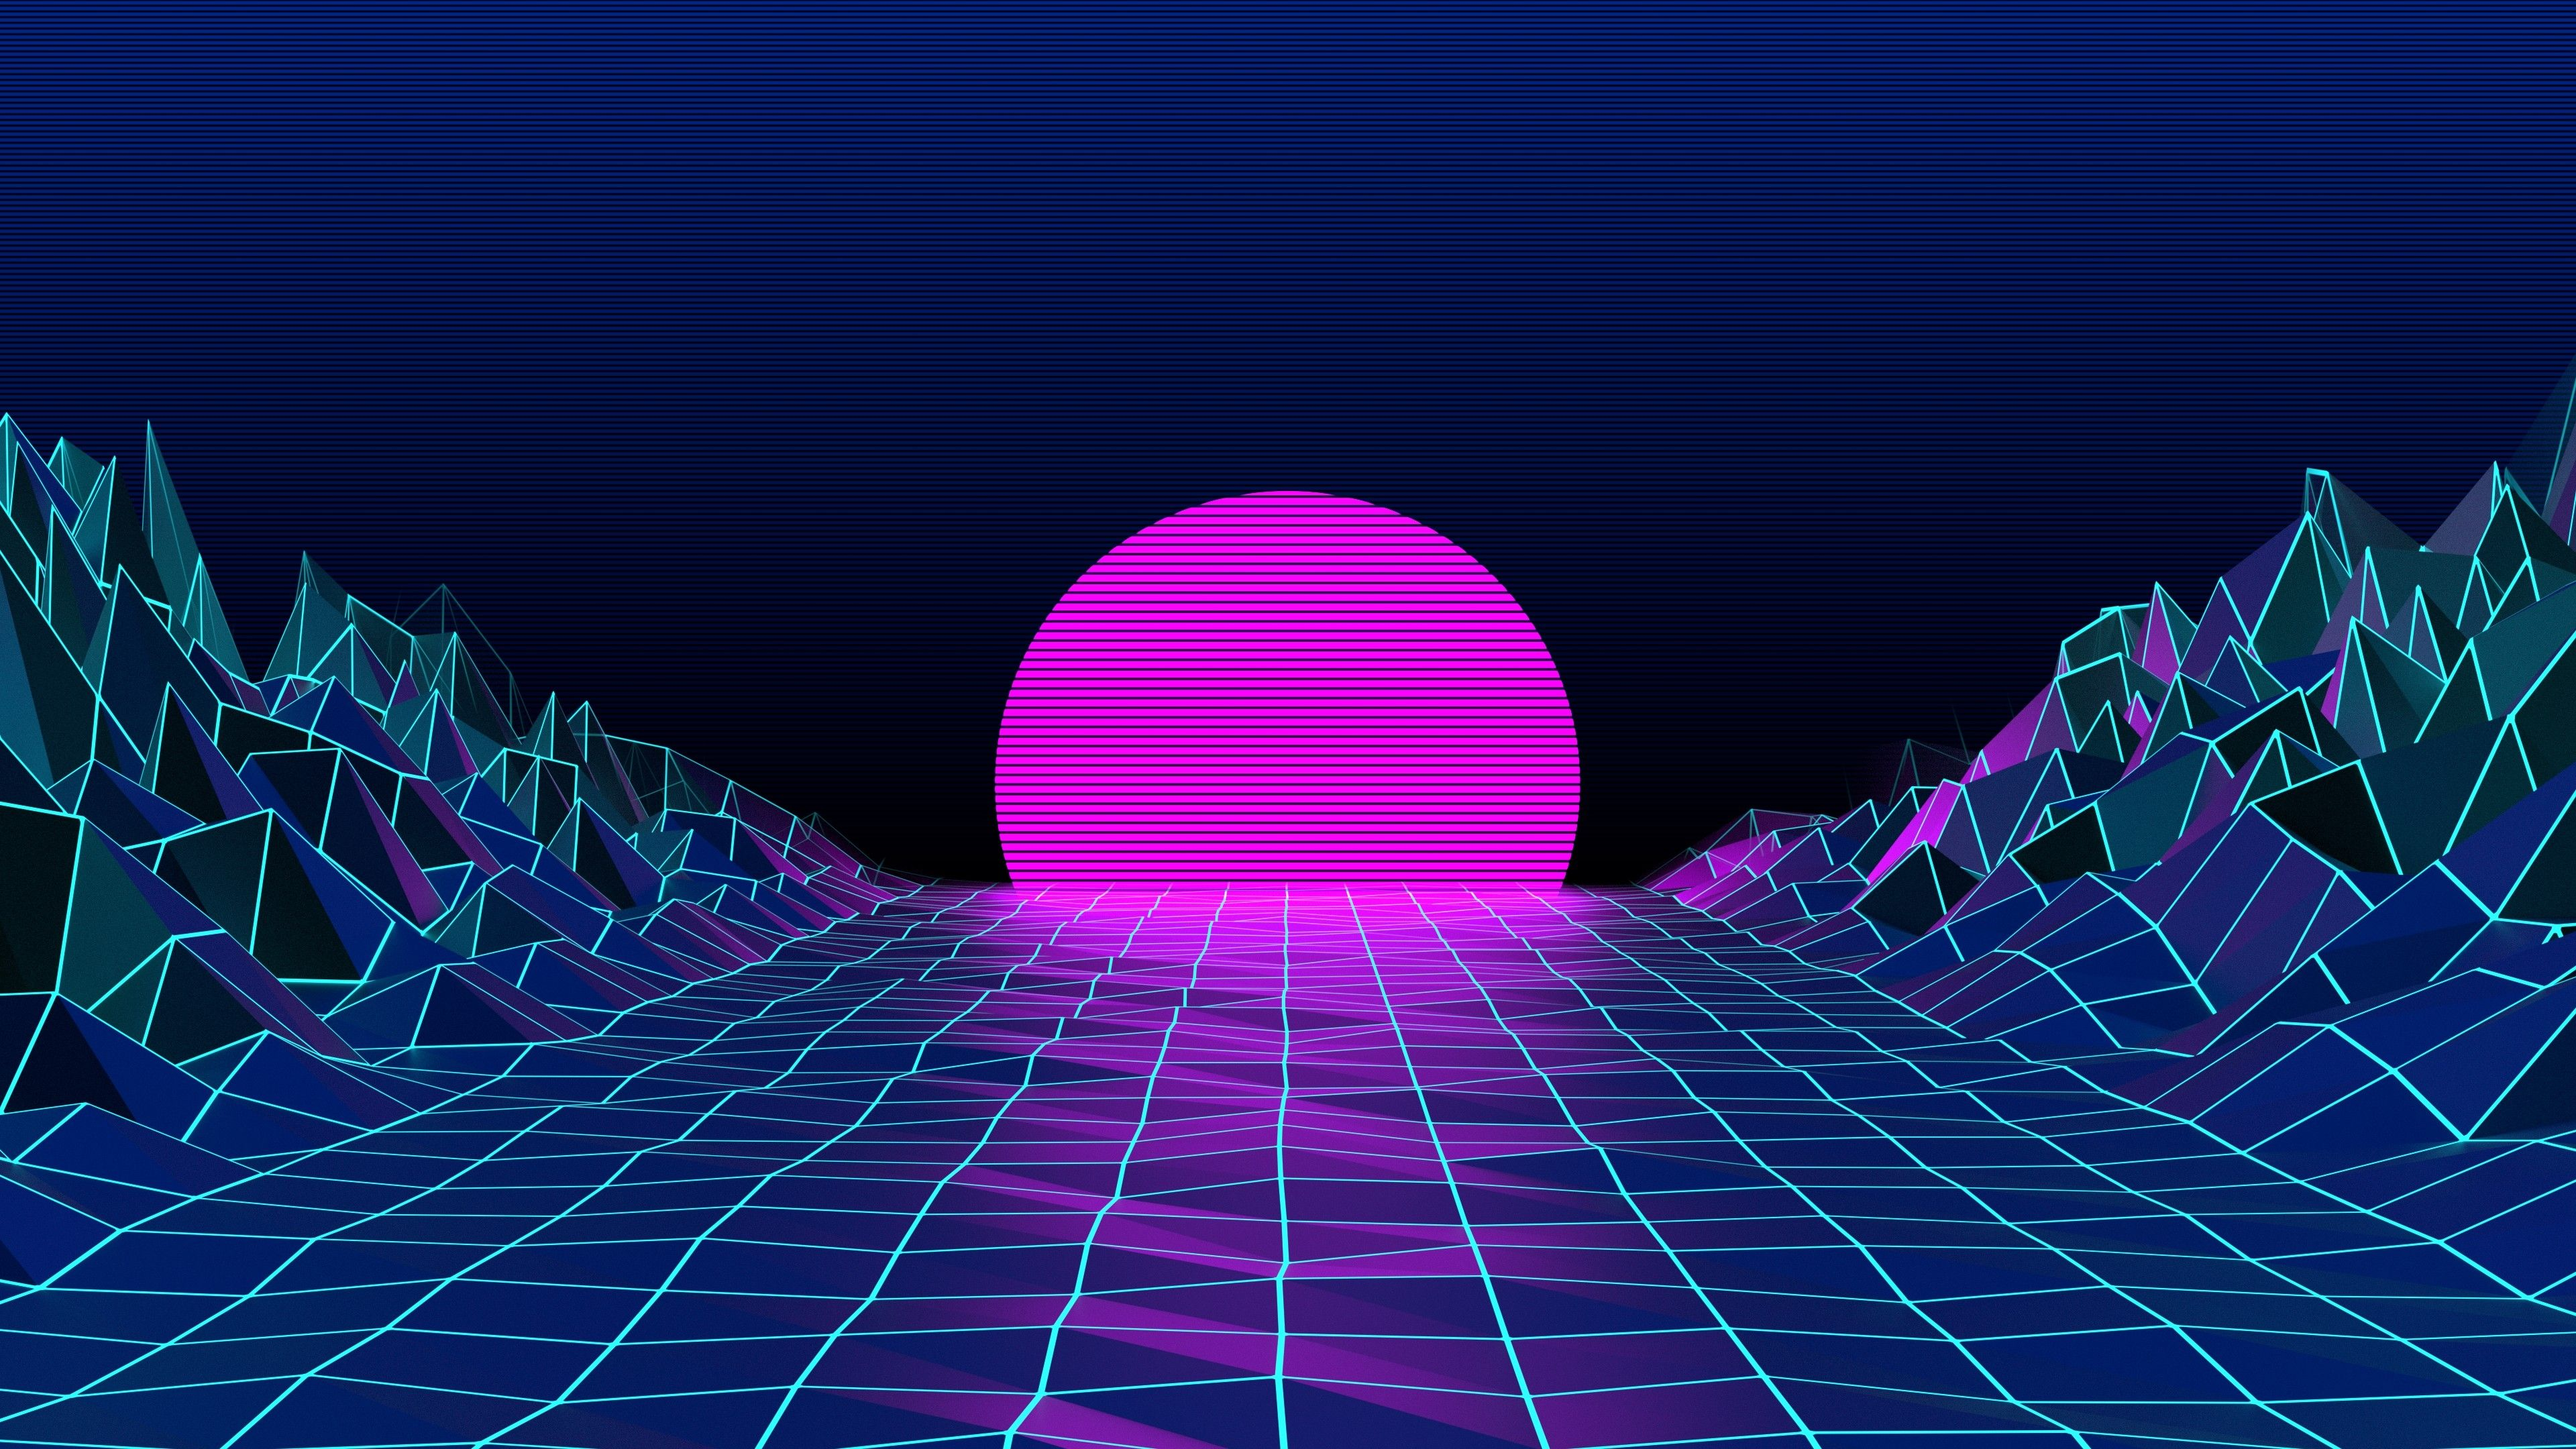 Laptop Aesthetic Wallpapers In 2020 Aesthetic Desktop Wallpaper Desktop Wallpaper Art Neon Wallpaper